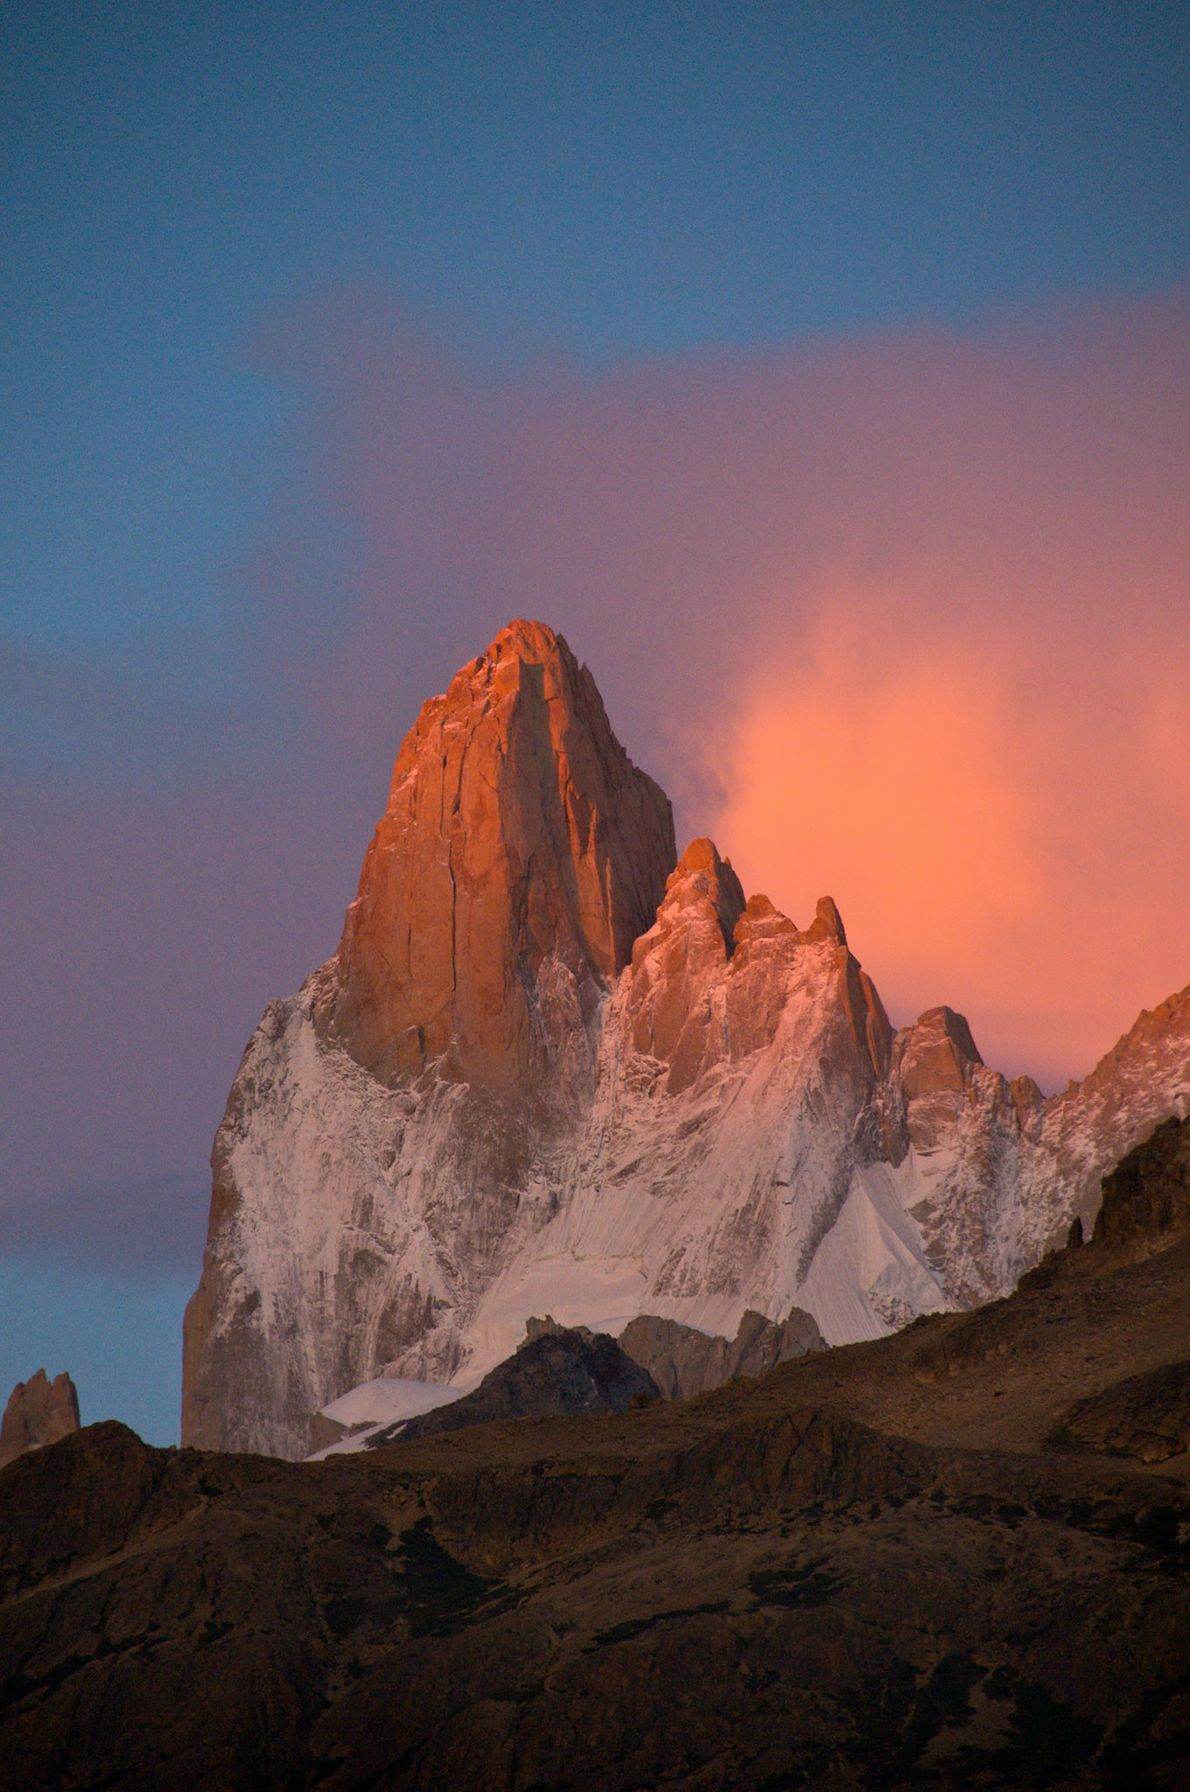 Mount Fitz Roy features sky-puncturing peaks on the border of Argentina and Chile.